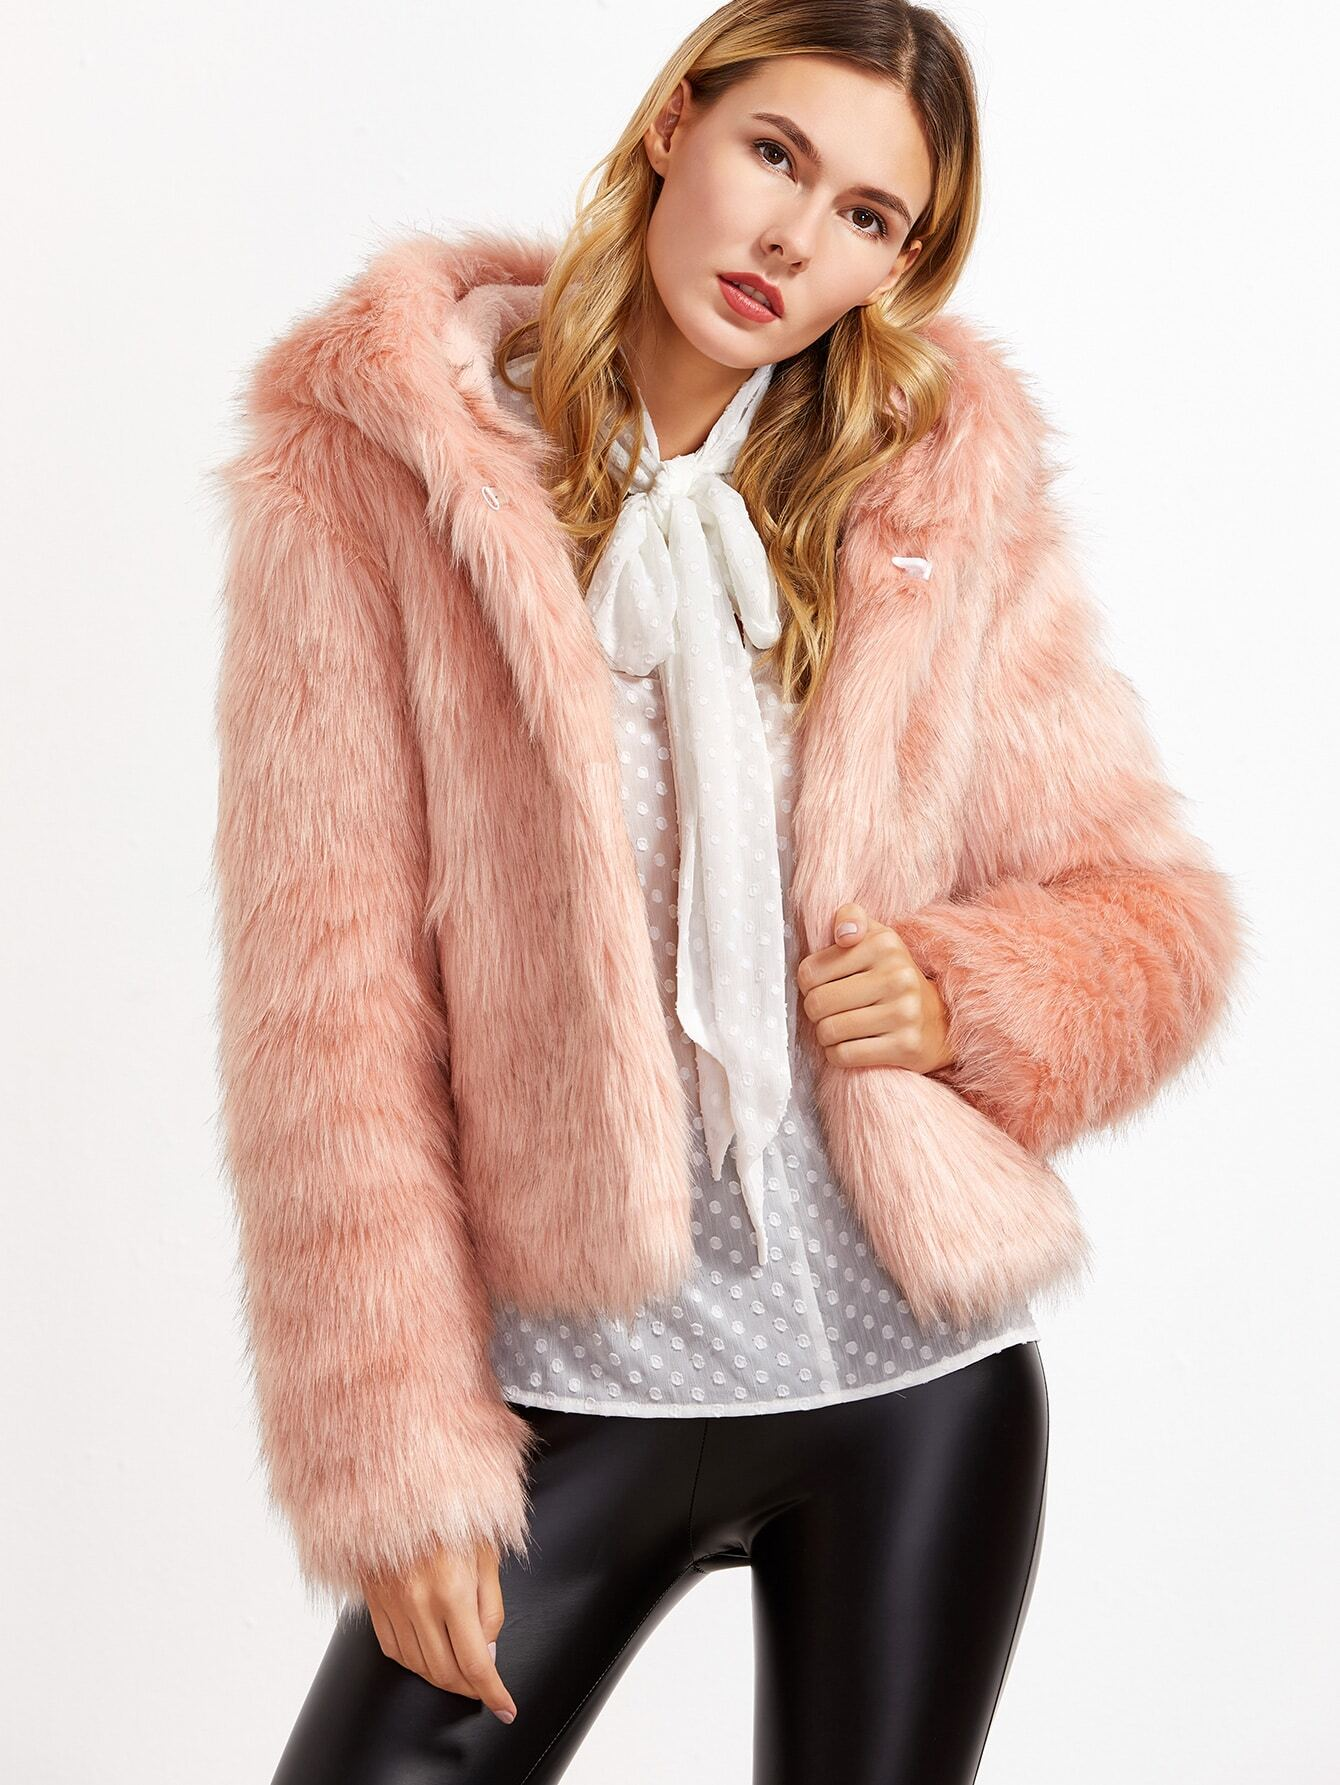 Coats Pink Faux Fur Hooded Casual Short Winter Plain Fabric has no stretch Long Sleeve Outerwear.